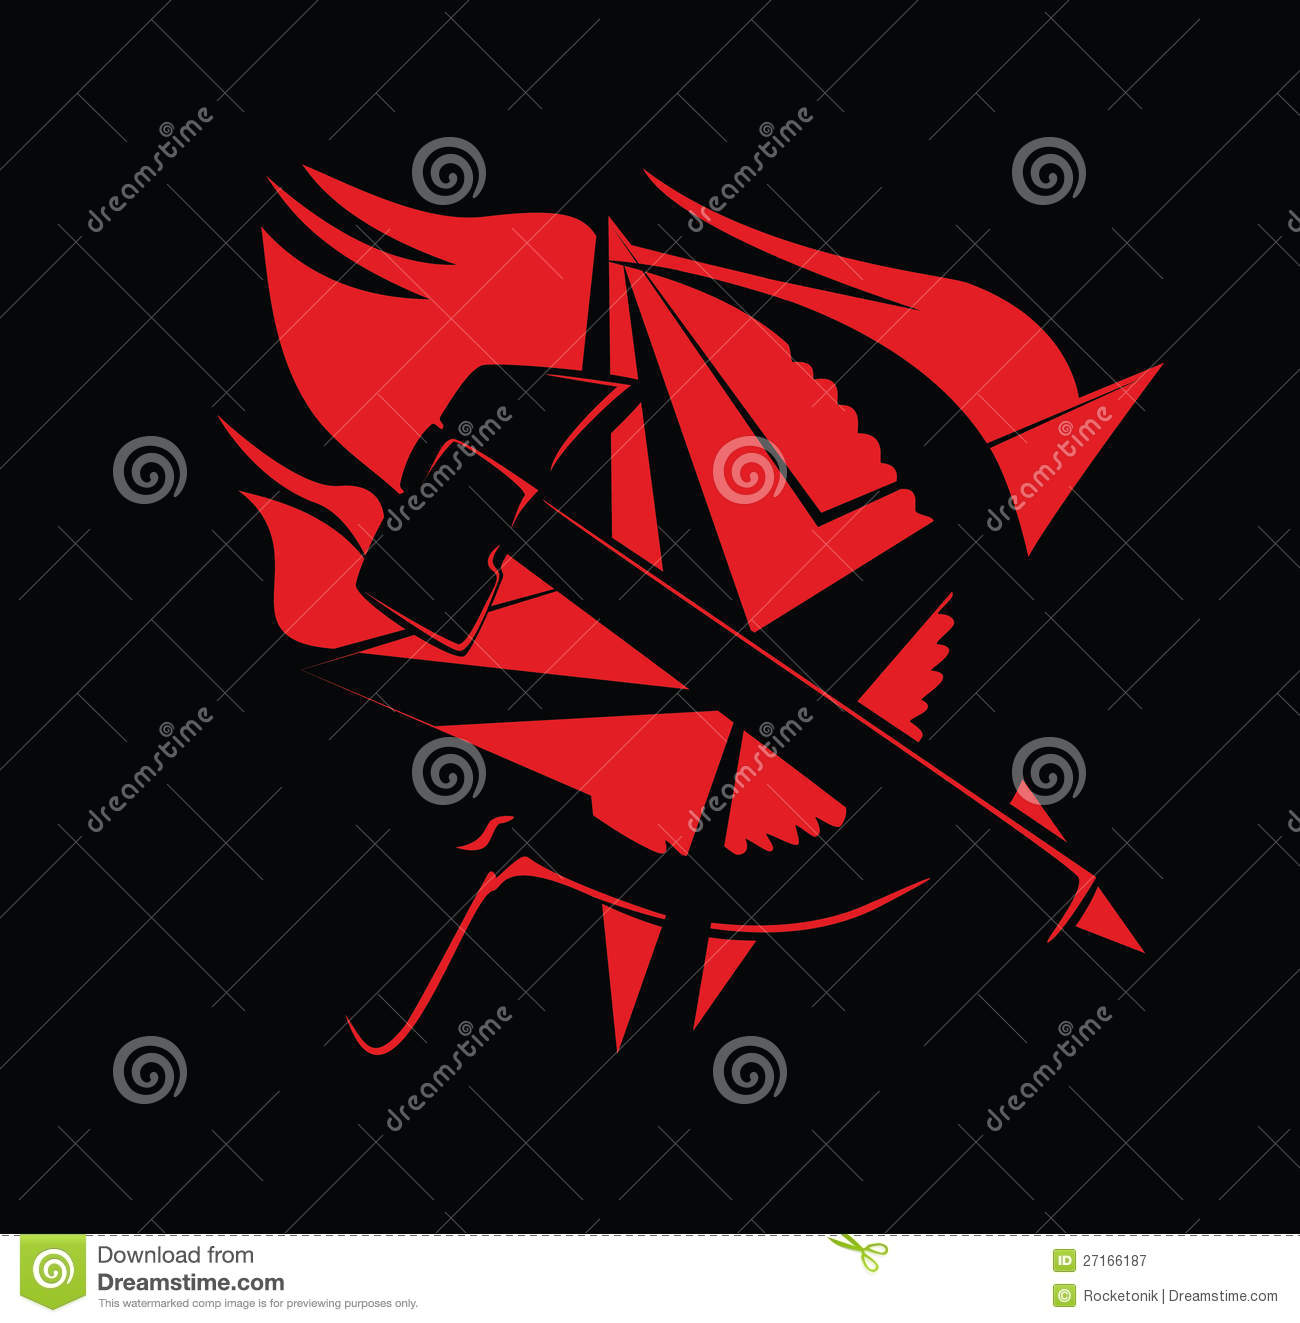 Hammer and sickle communism symbol red on black stock vector hammer and sickle communism symbol red on black biocorpaavc Gallery